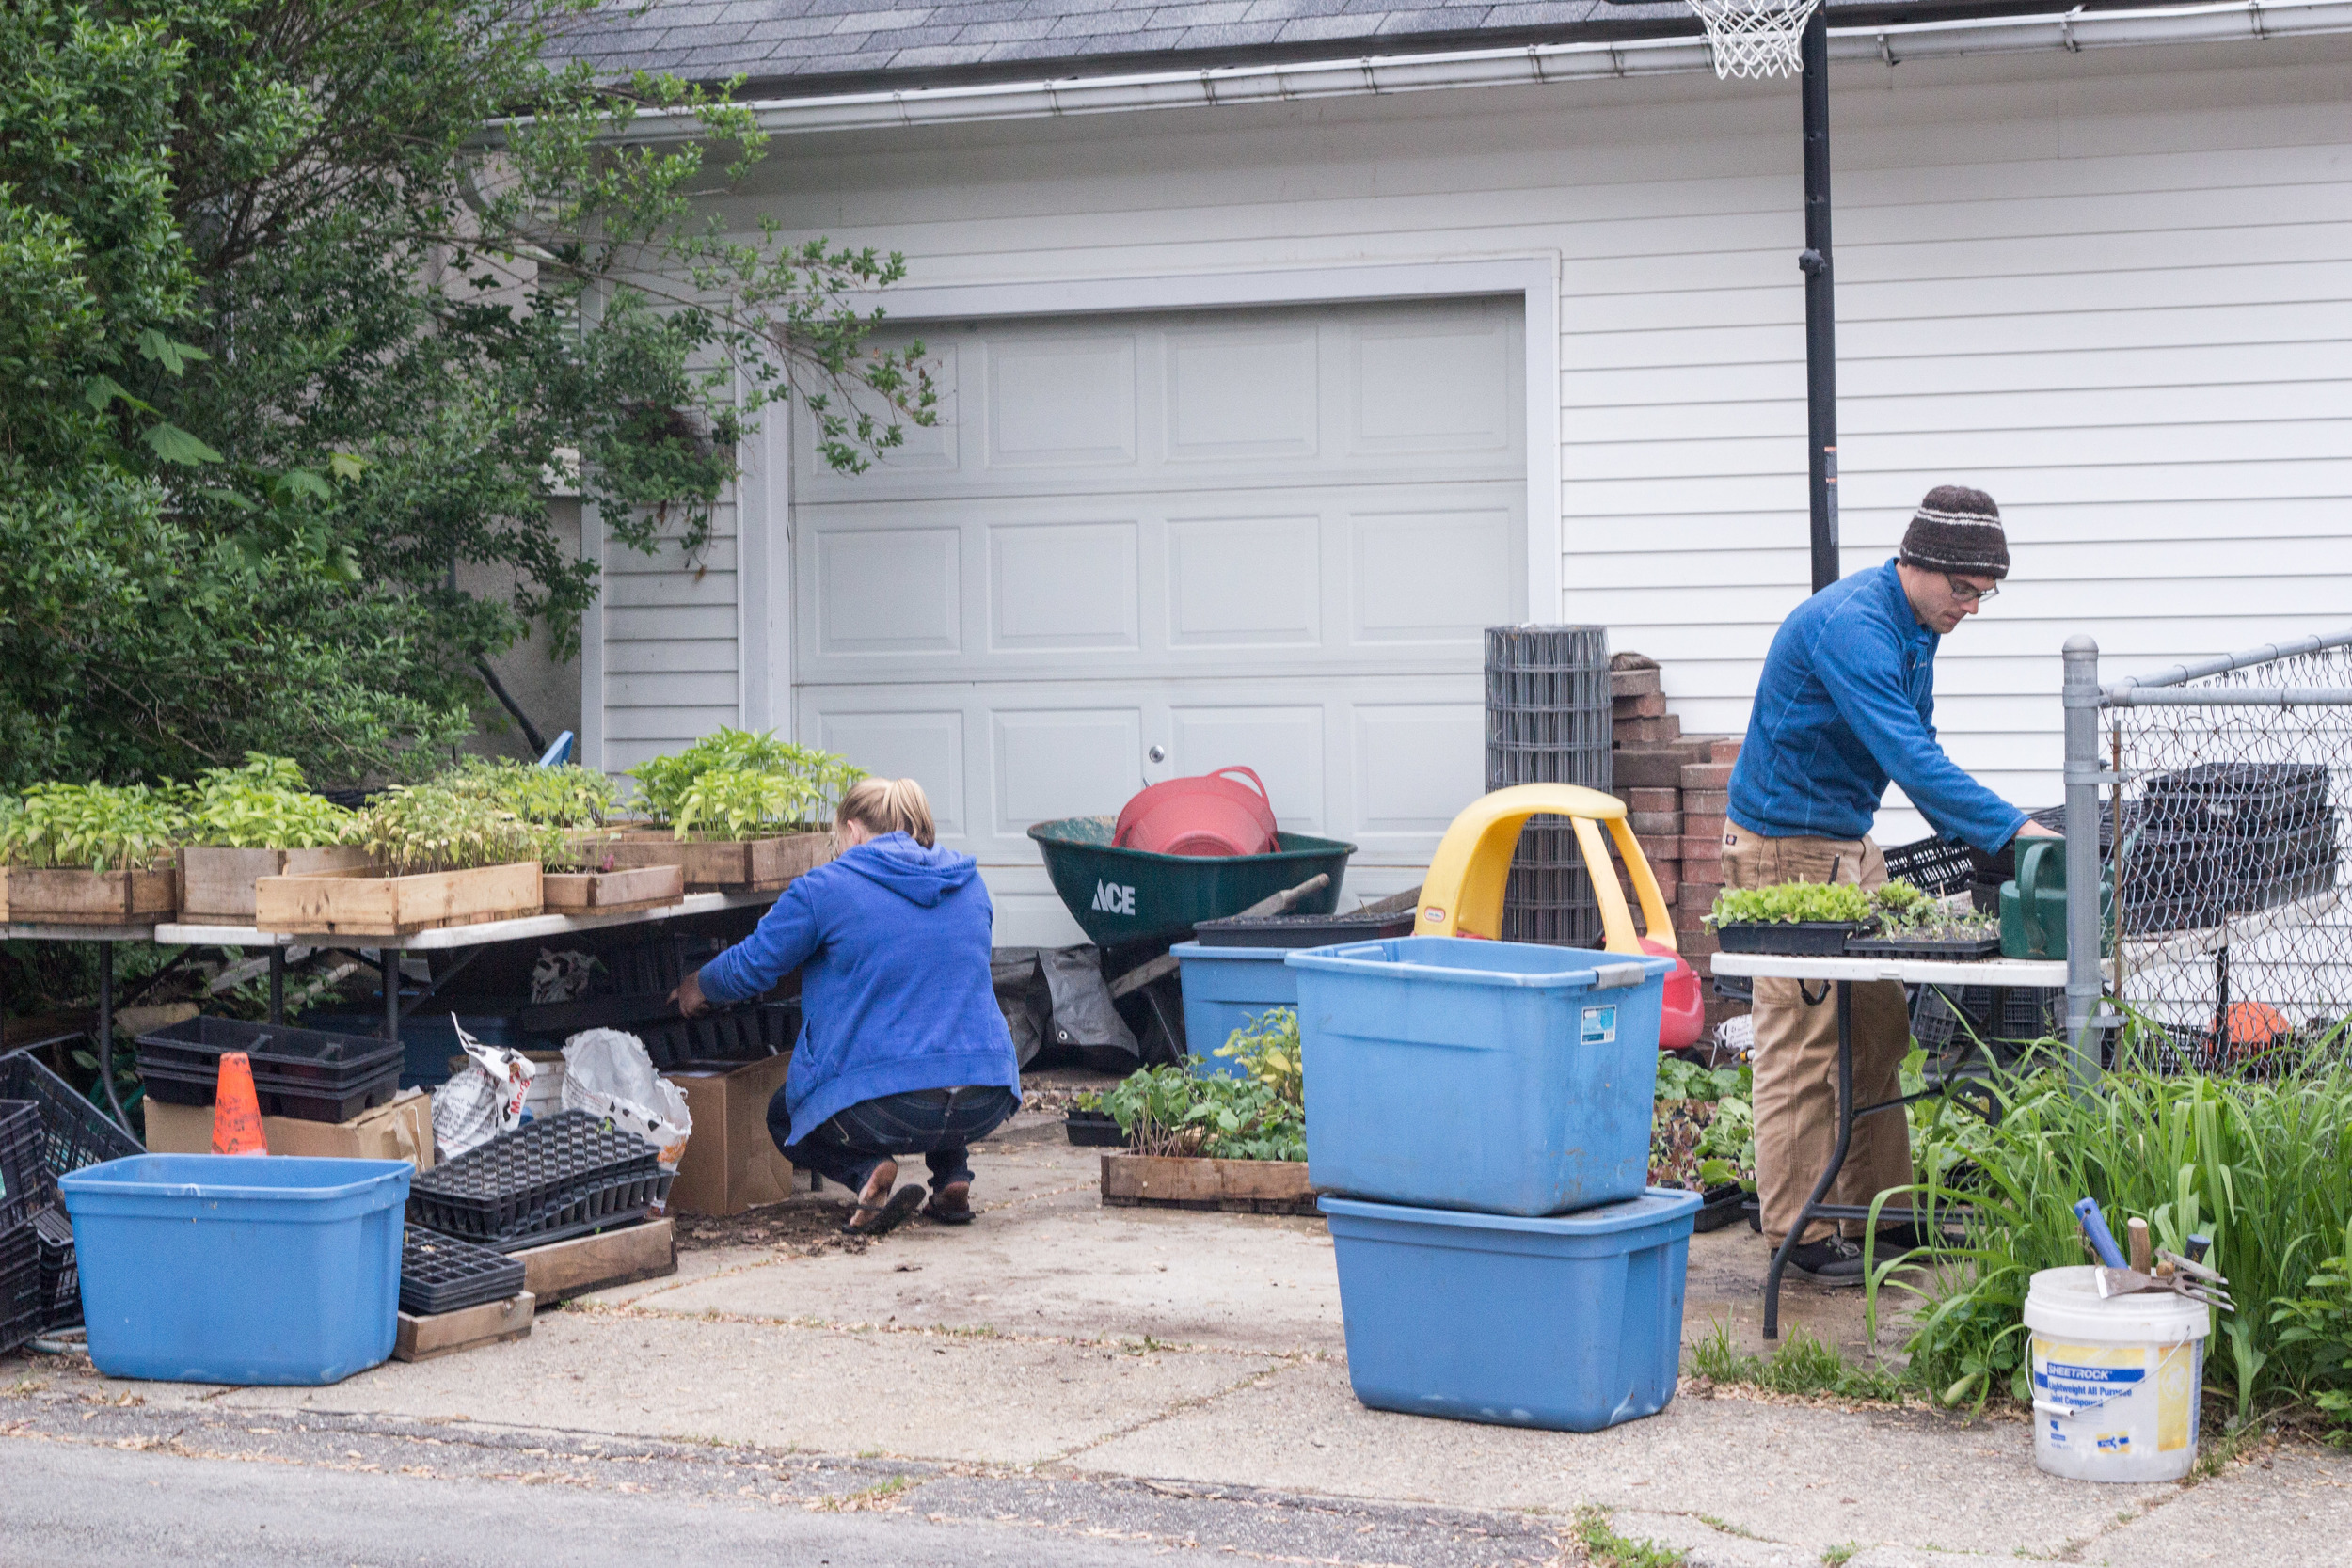 Urban Roots grows right in the city